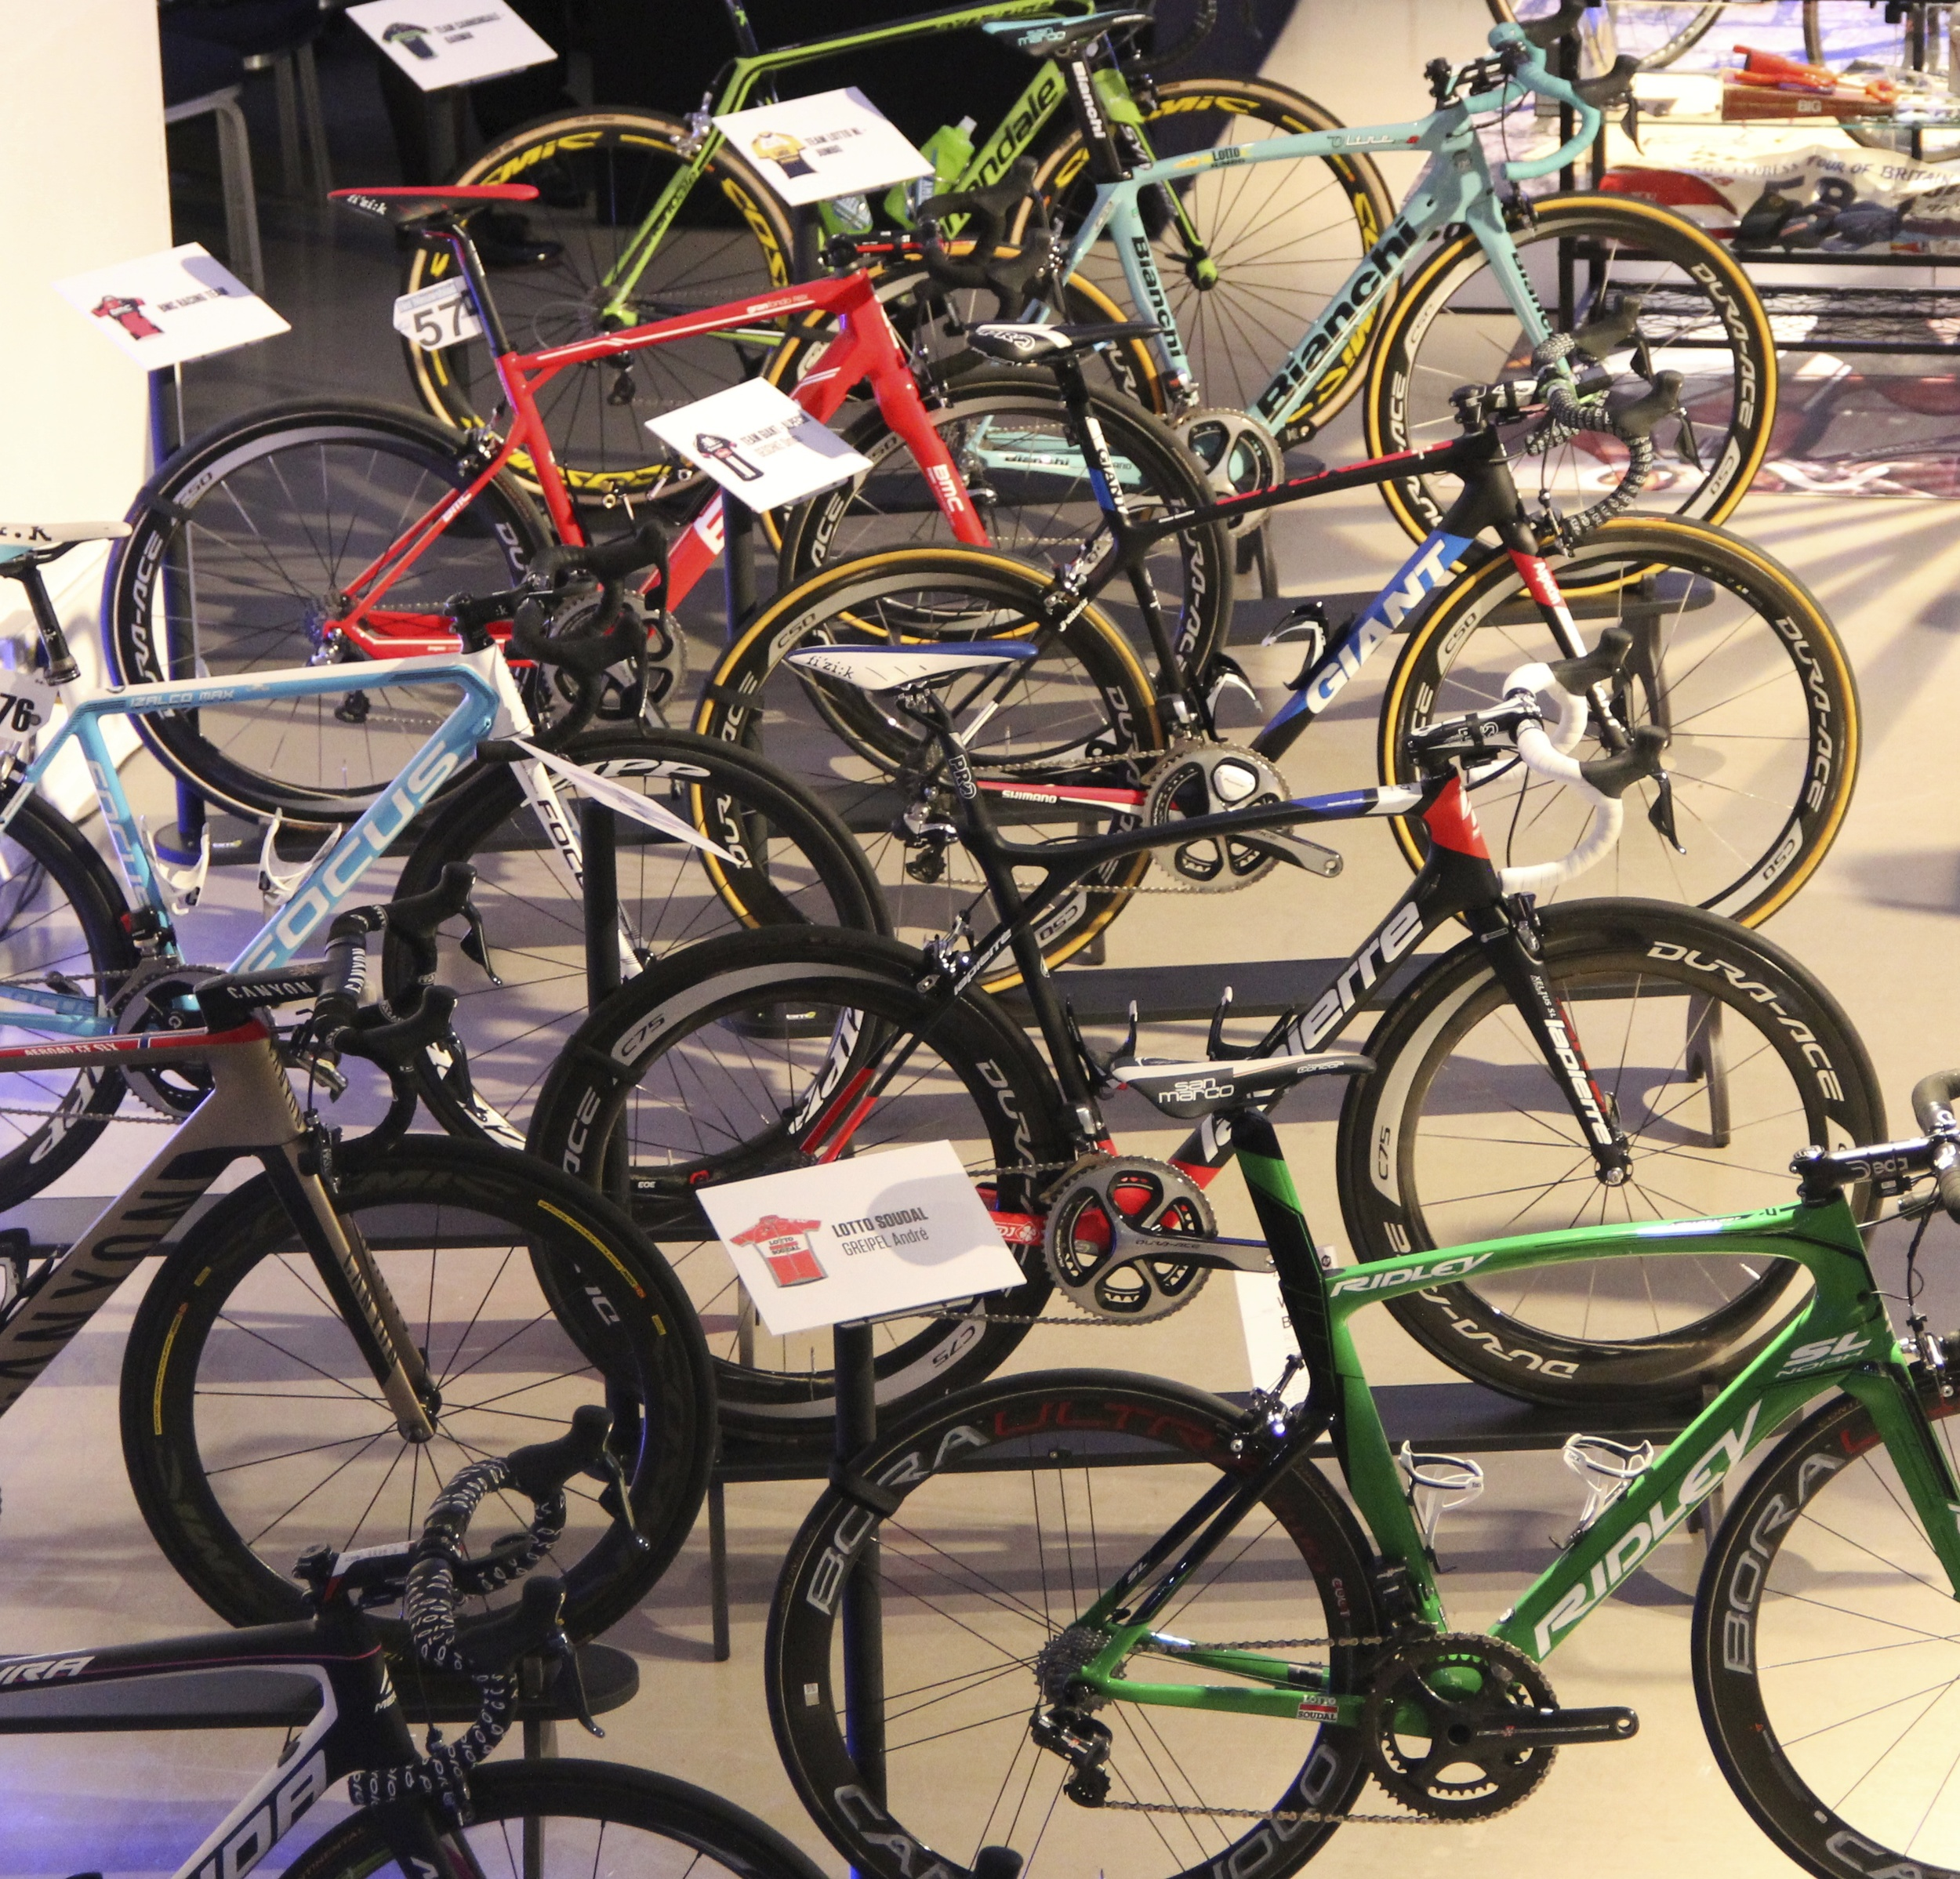 It's not your local Evans, it's only the best road bikes in the world!